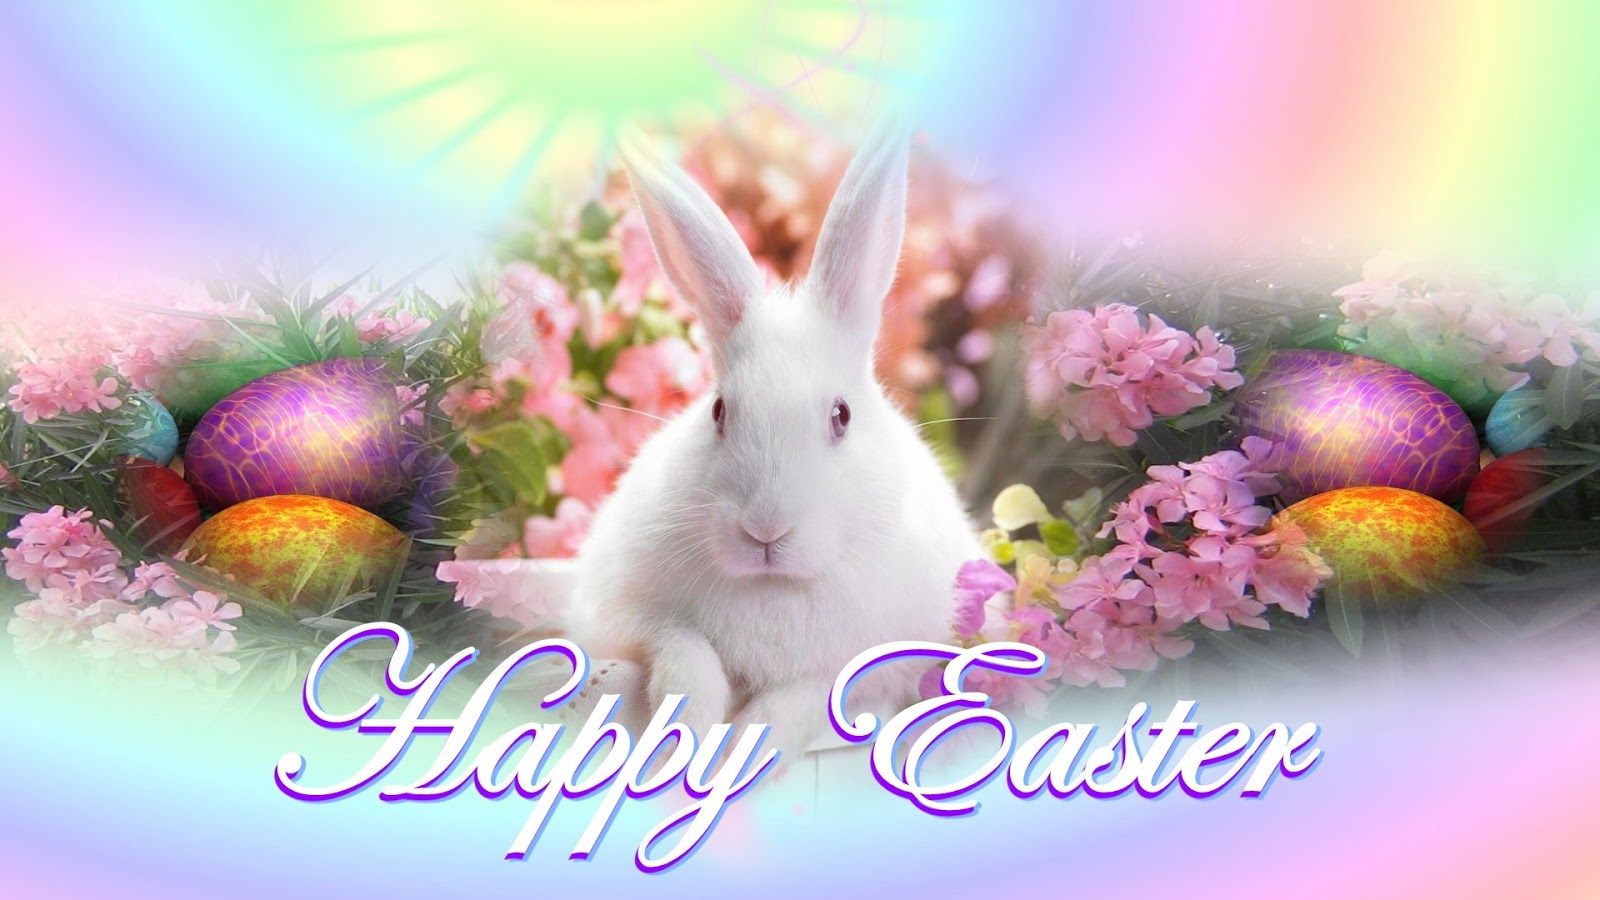 Beautiful Best Happy Easter Egg Images U0026 Pictures